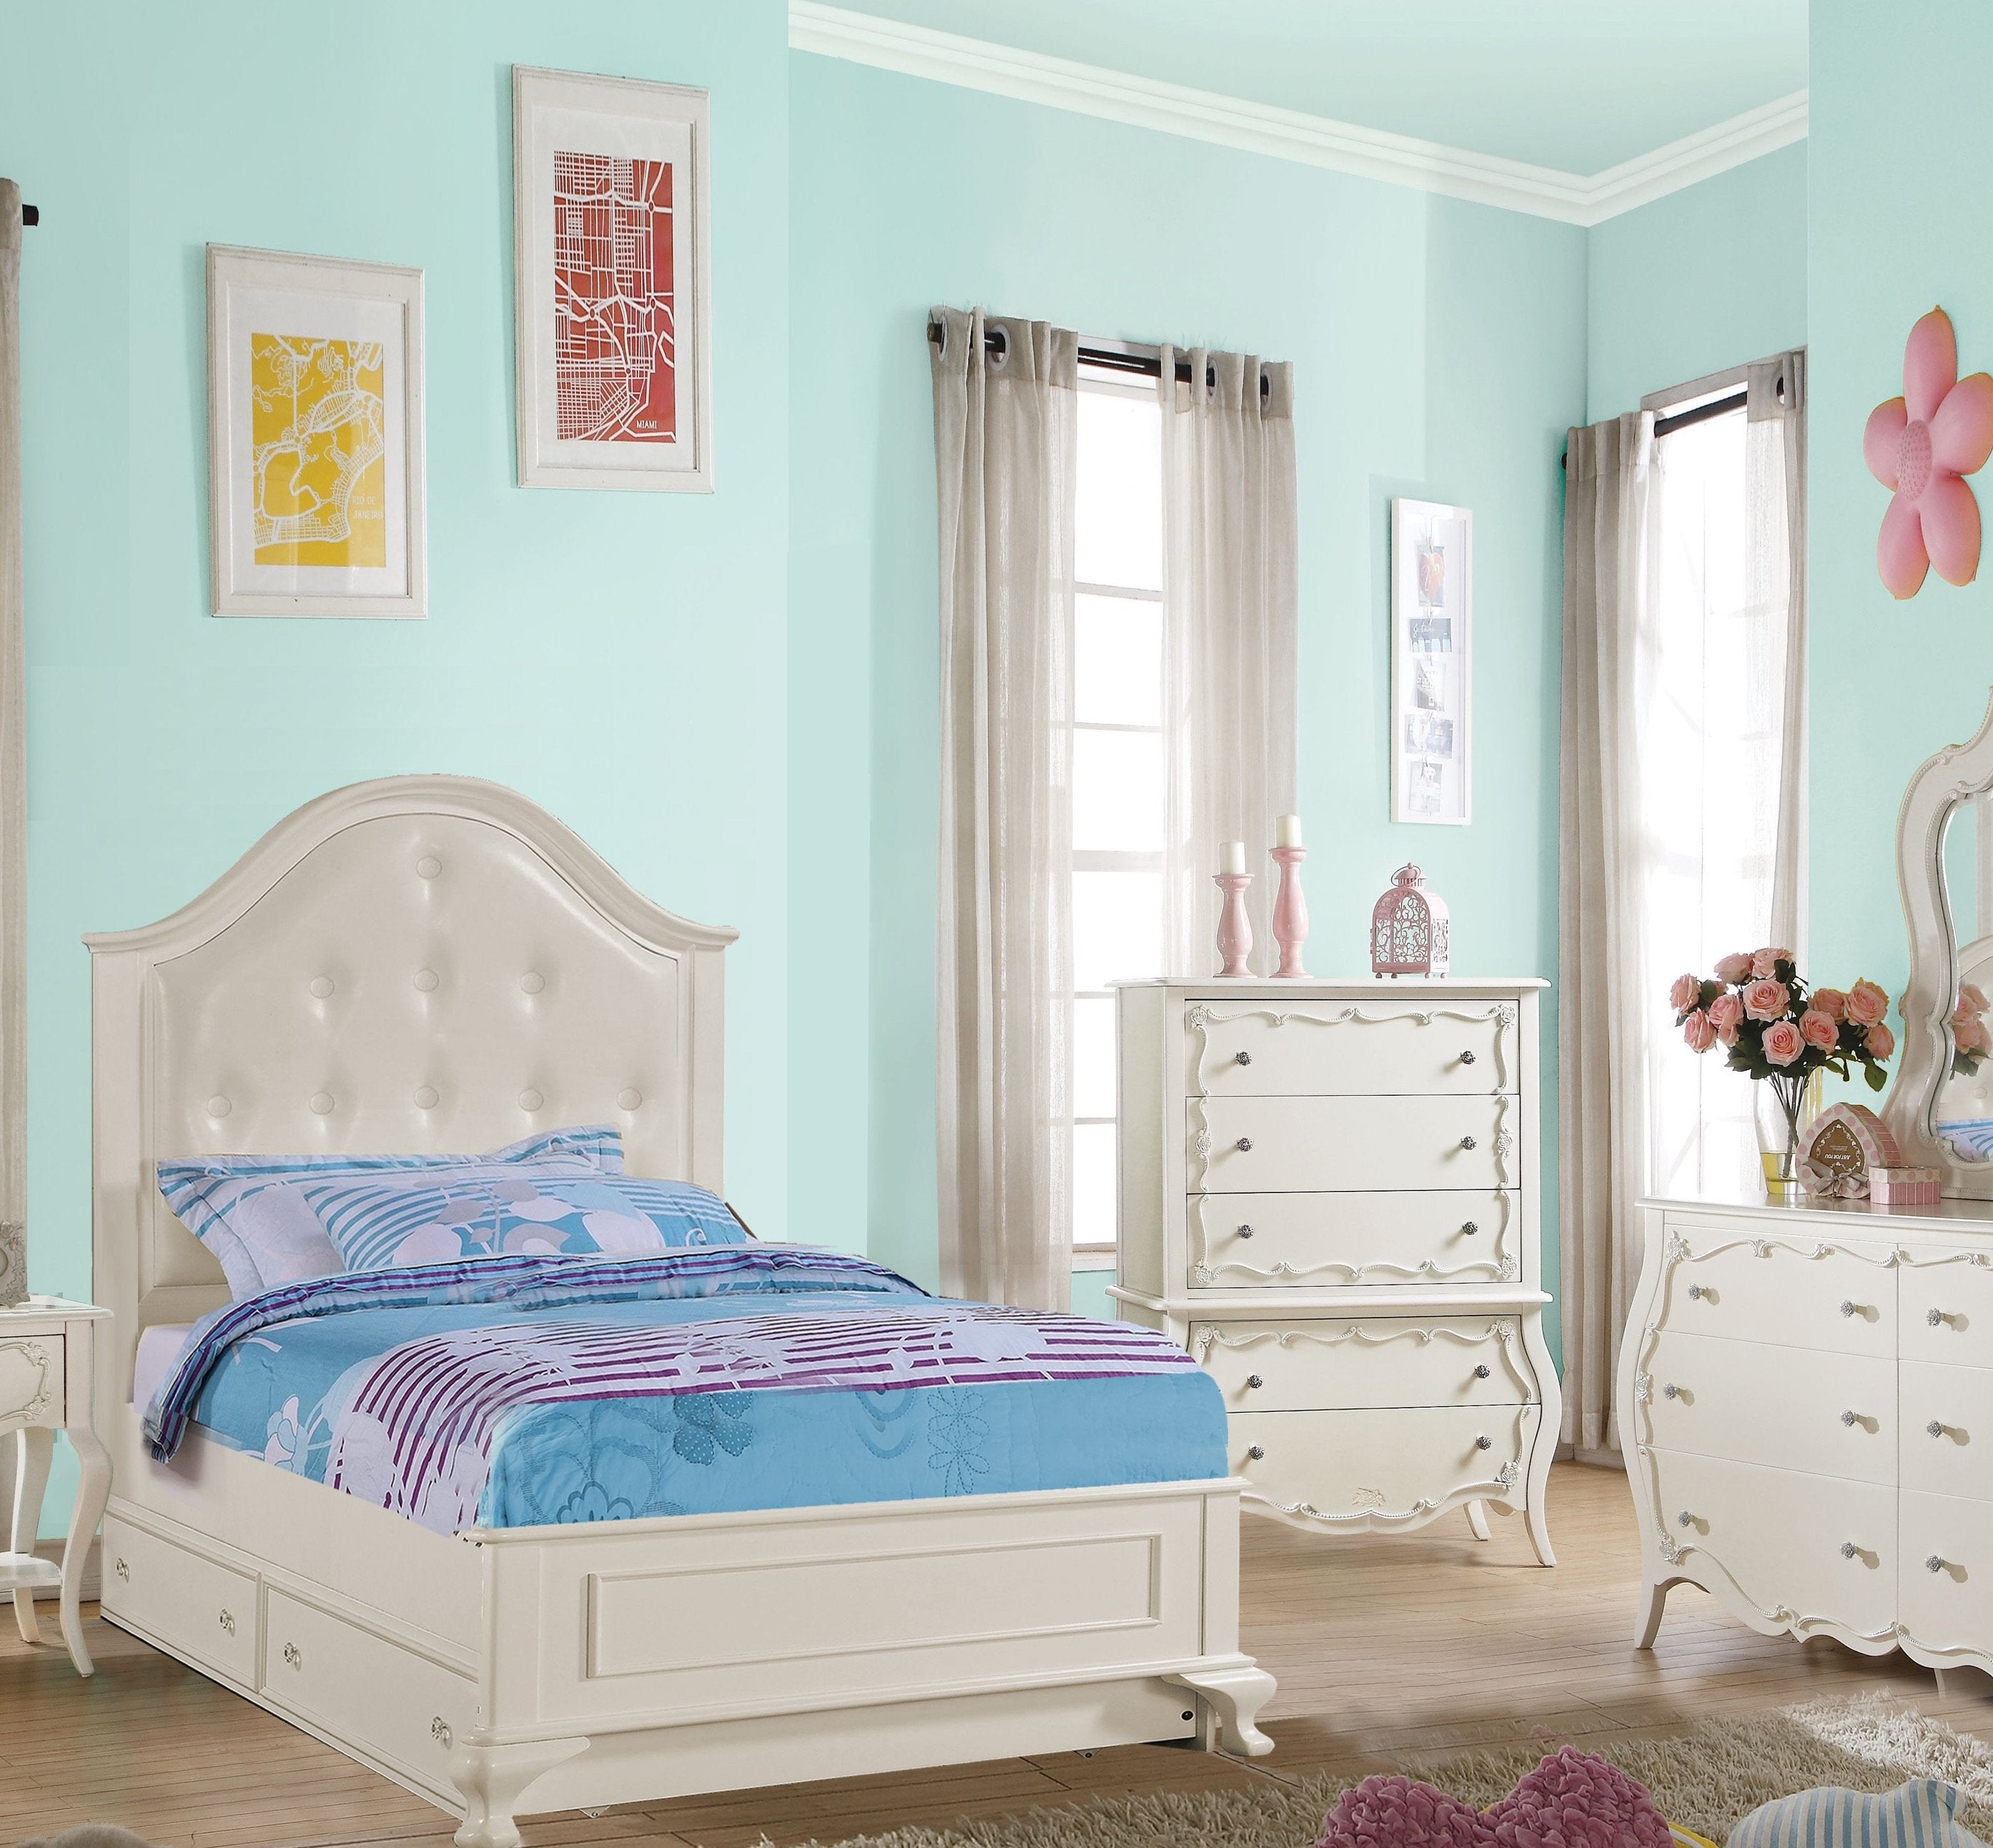 Surprising Youth Bedroom Furniture Shop Our Dallas Area Classic And Interior Design Ideas Helimdqseriescom